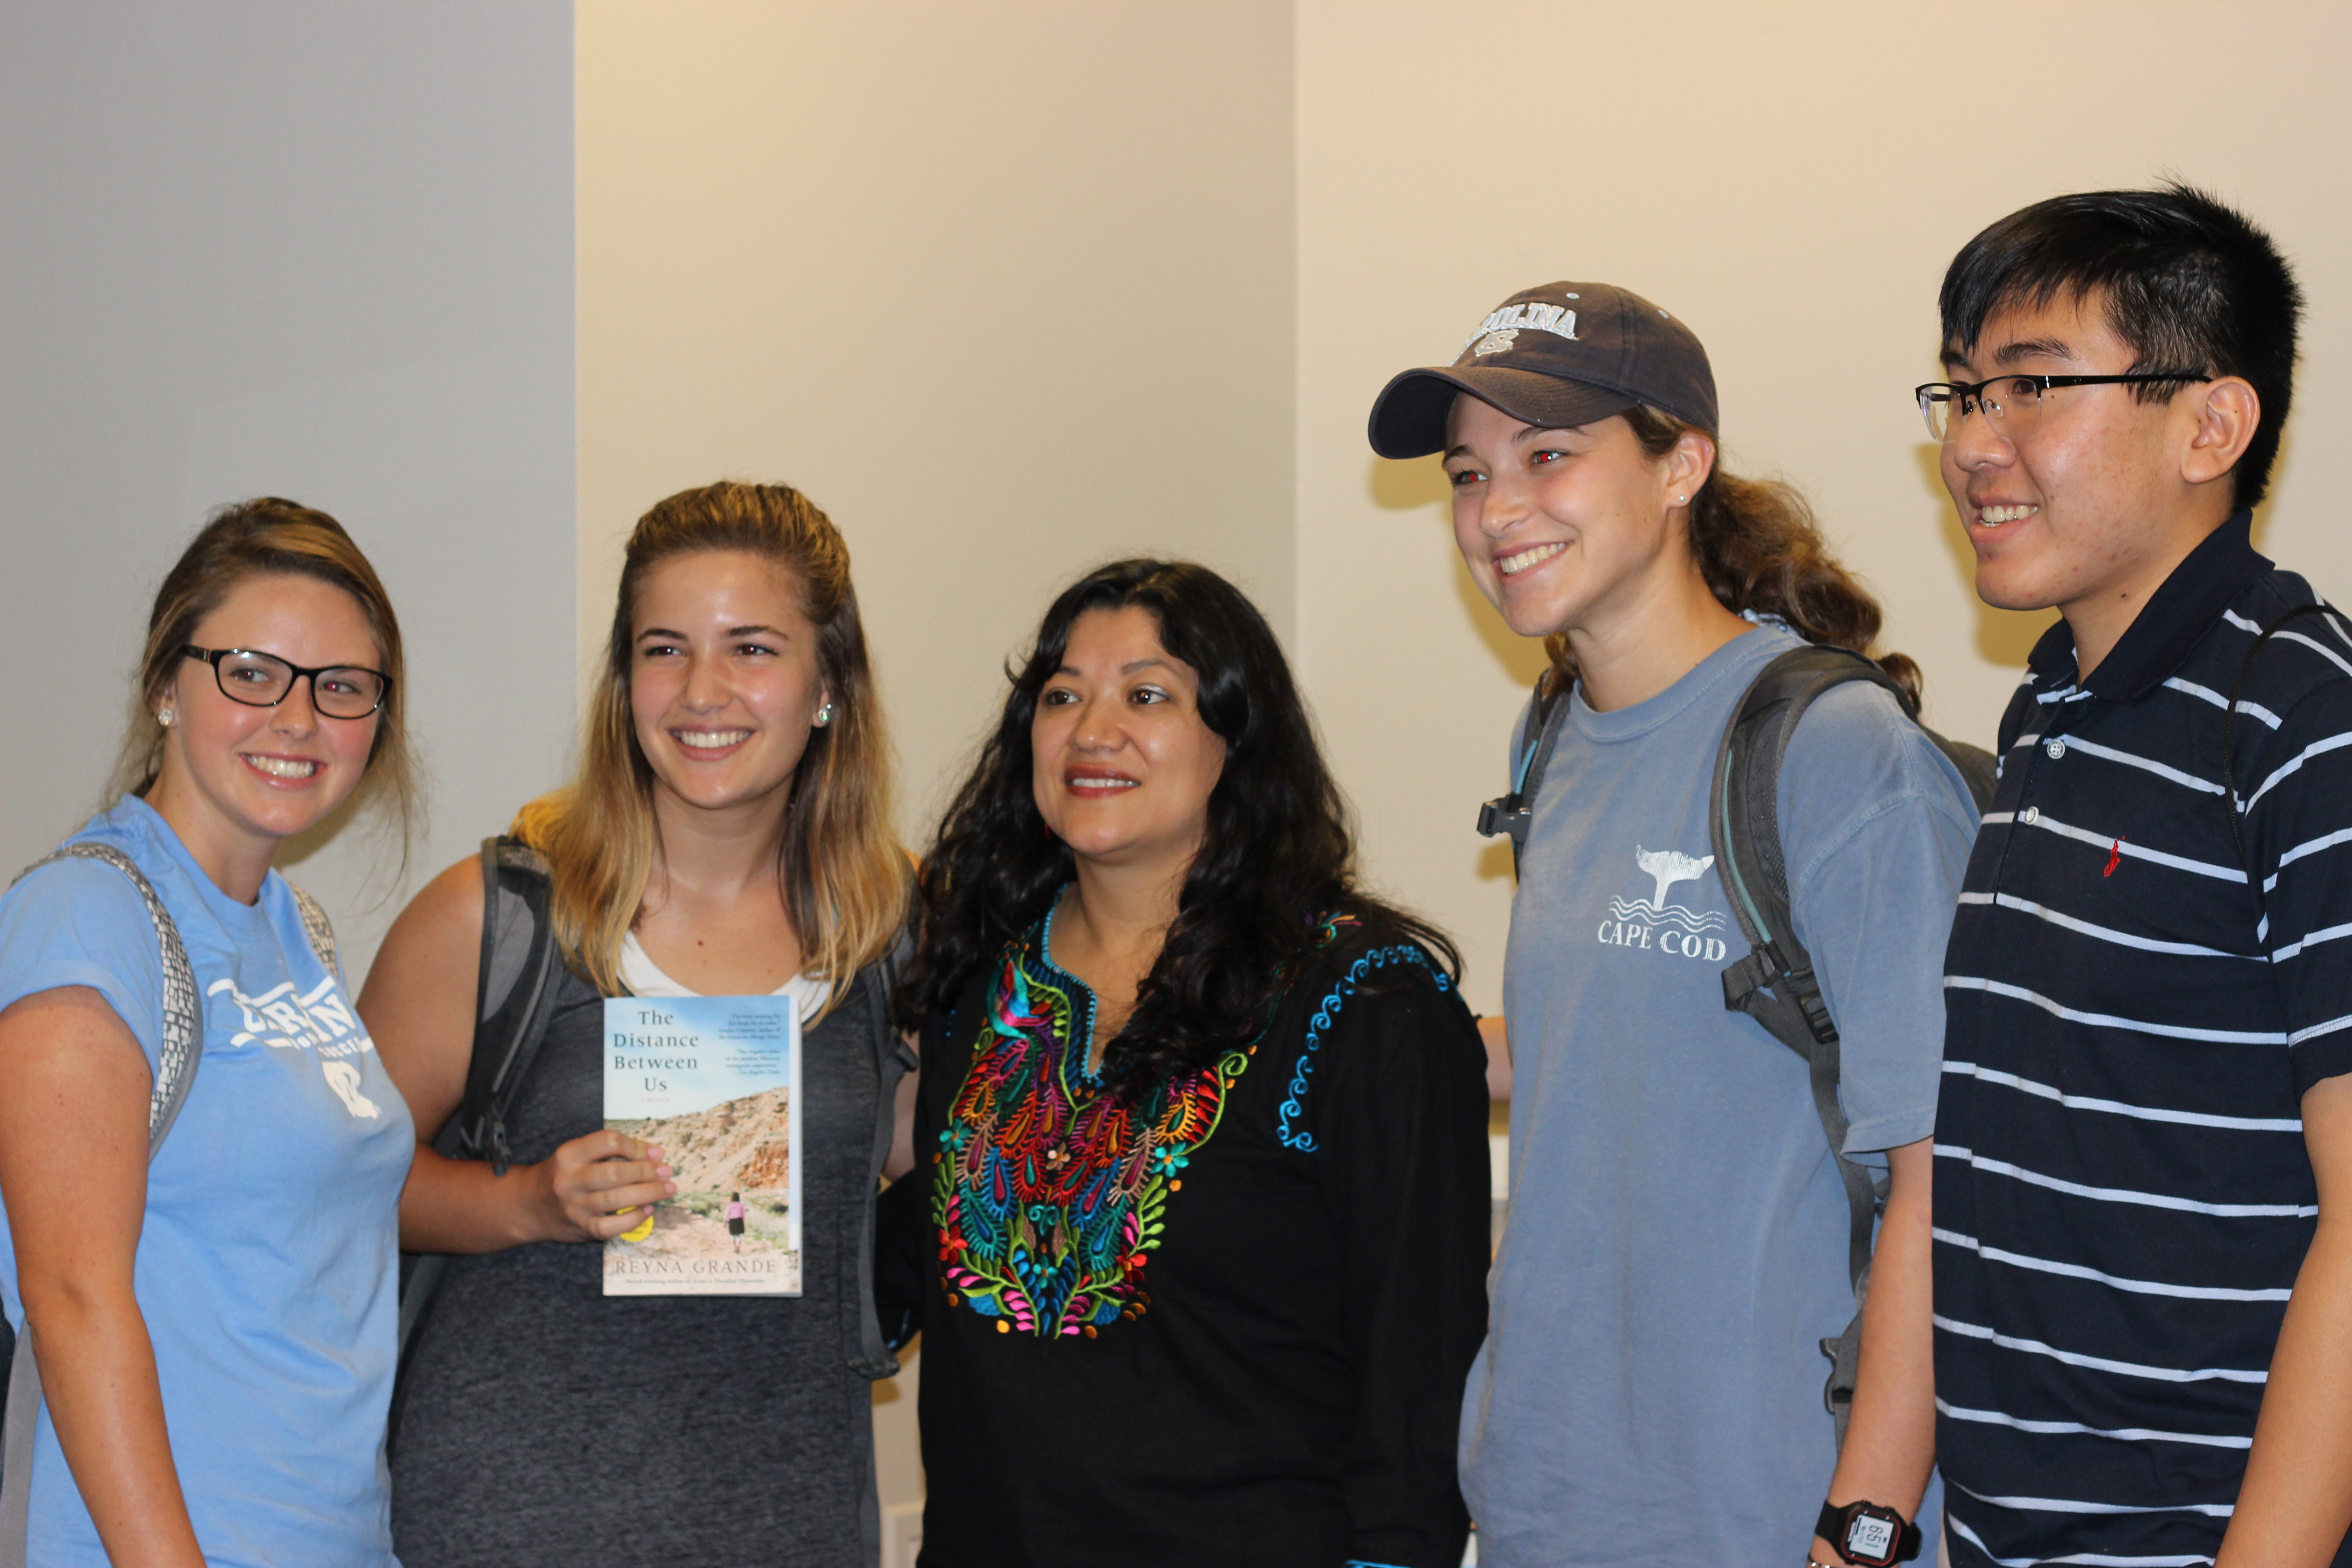 """Reyna Grande posing for a photo with four smiling students, one of whom is holding up a copy of Grande's book """"The Distance Between Us."""""""